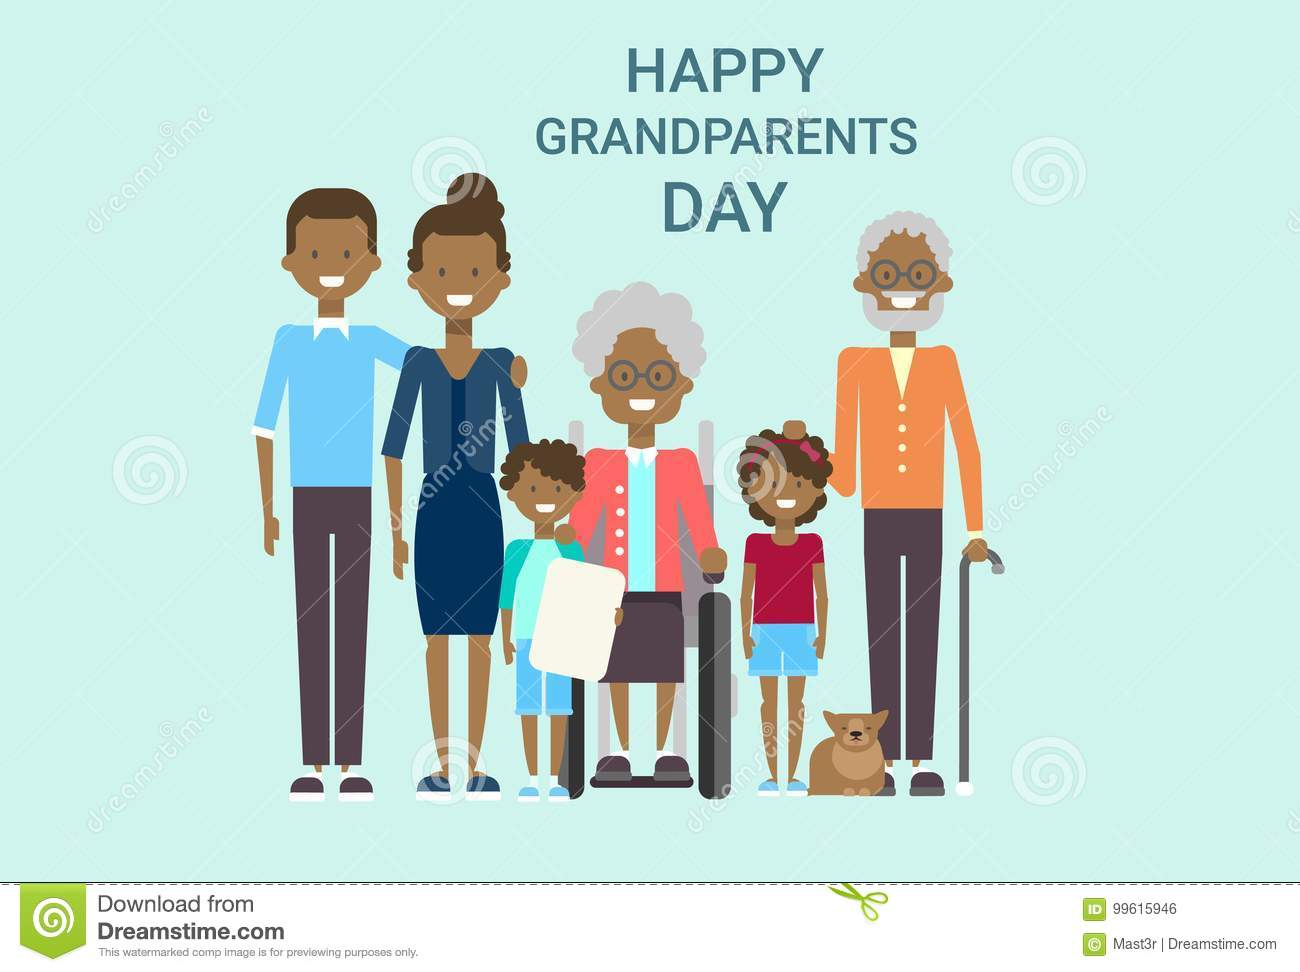 Happy grandparents day greeting card banner big african american happy grandparents day greeting card banner big african american family together royalty free vector kristyandbryce Images